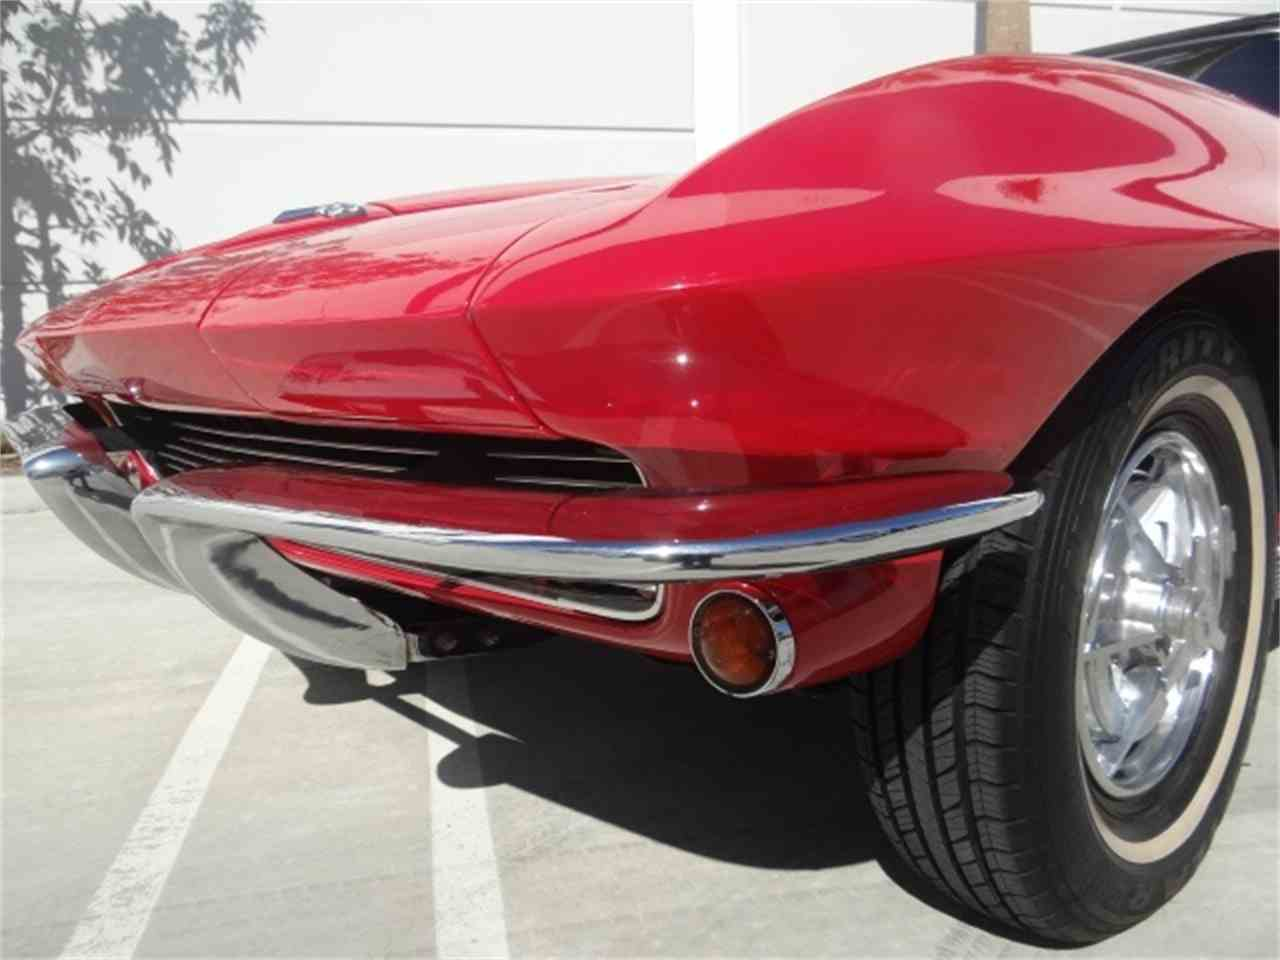 Large Picture of '63 Corvette located in California - $49,900.00 - MUAW